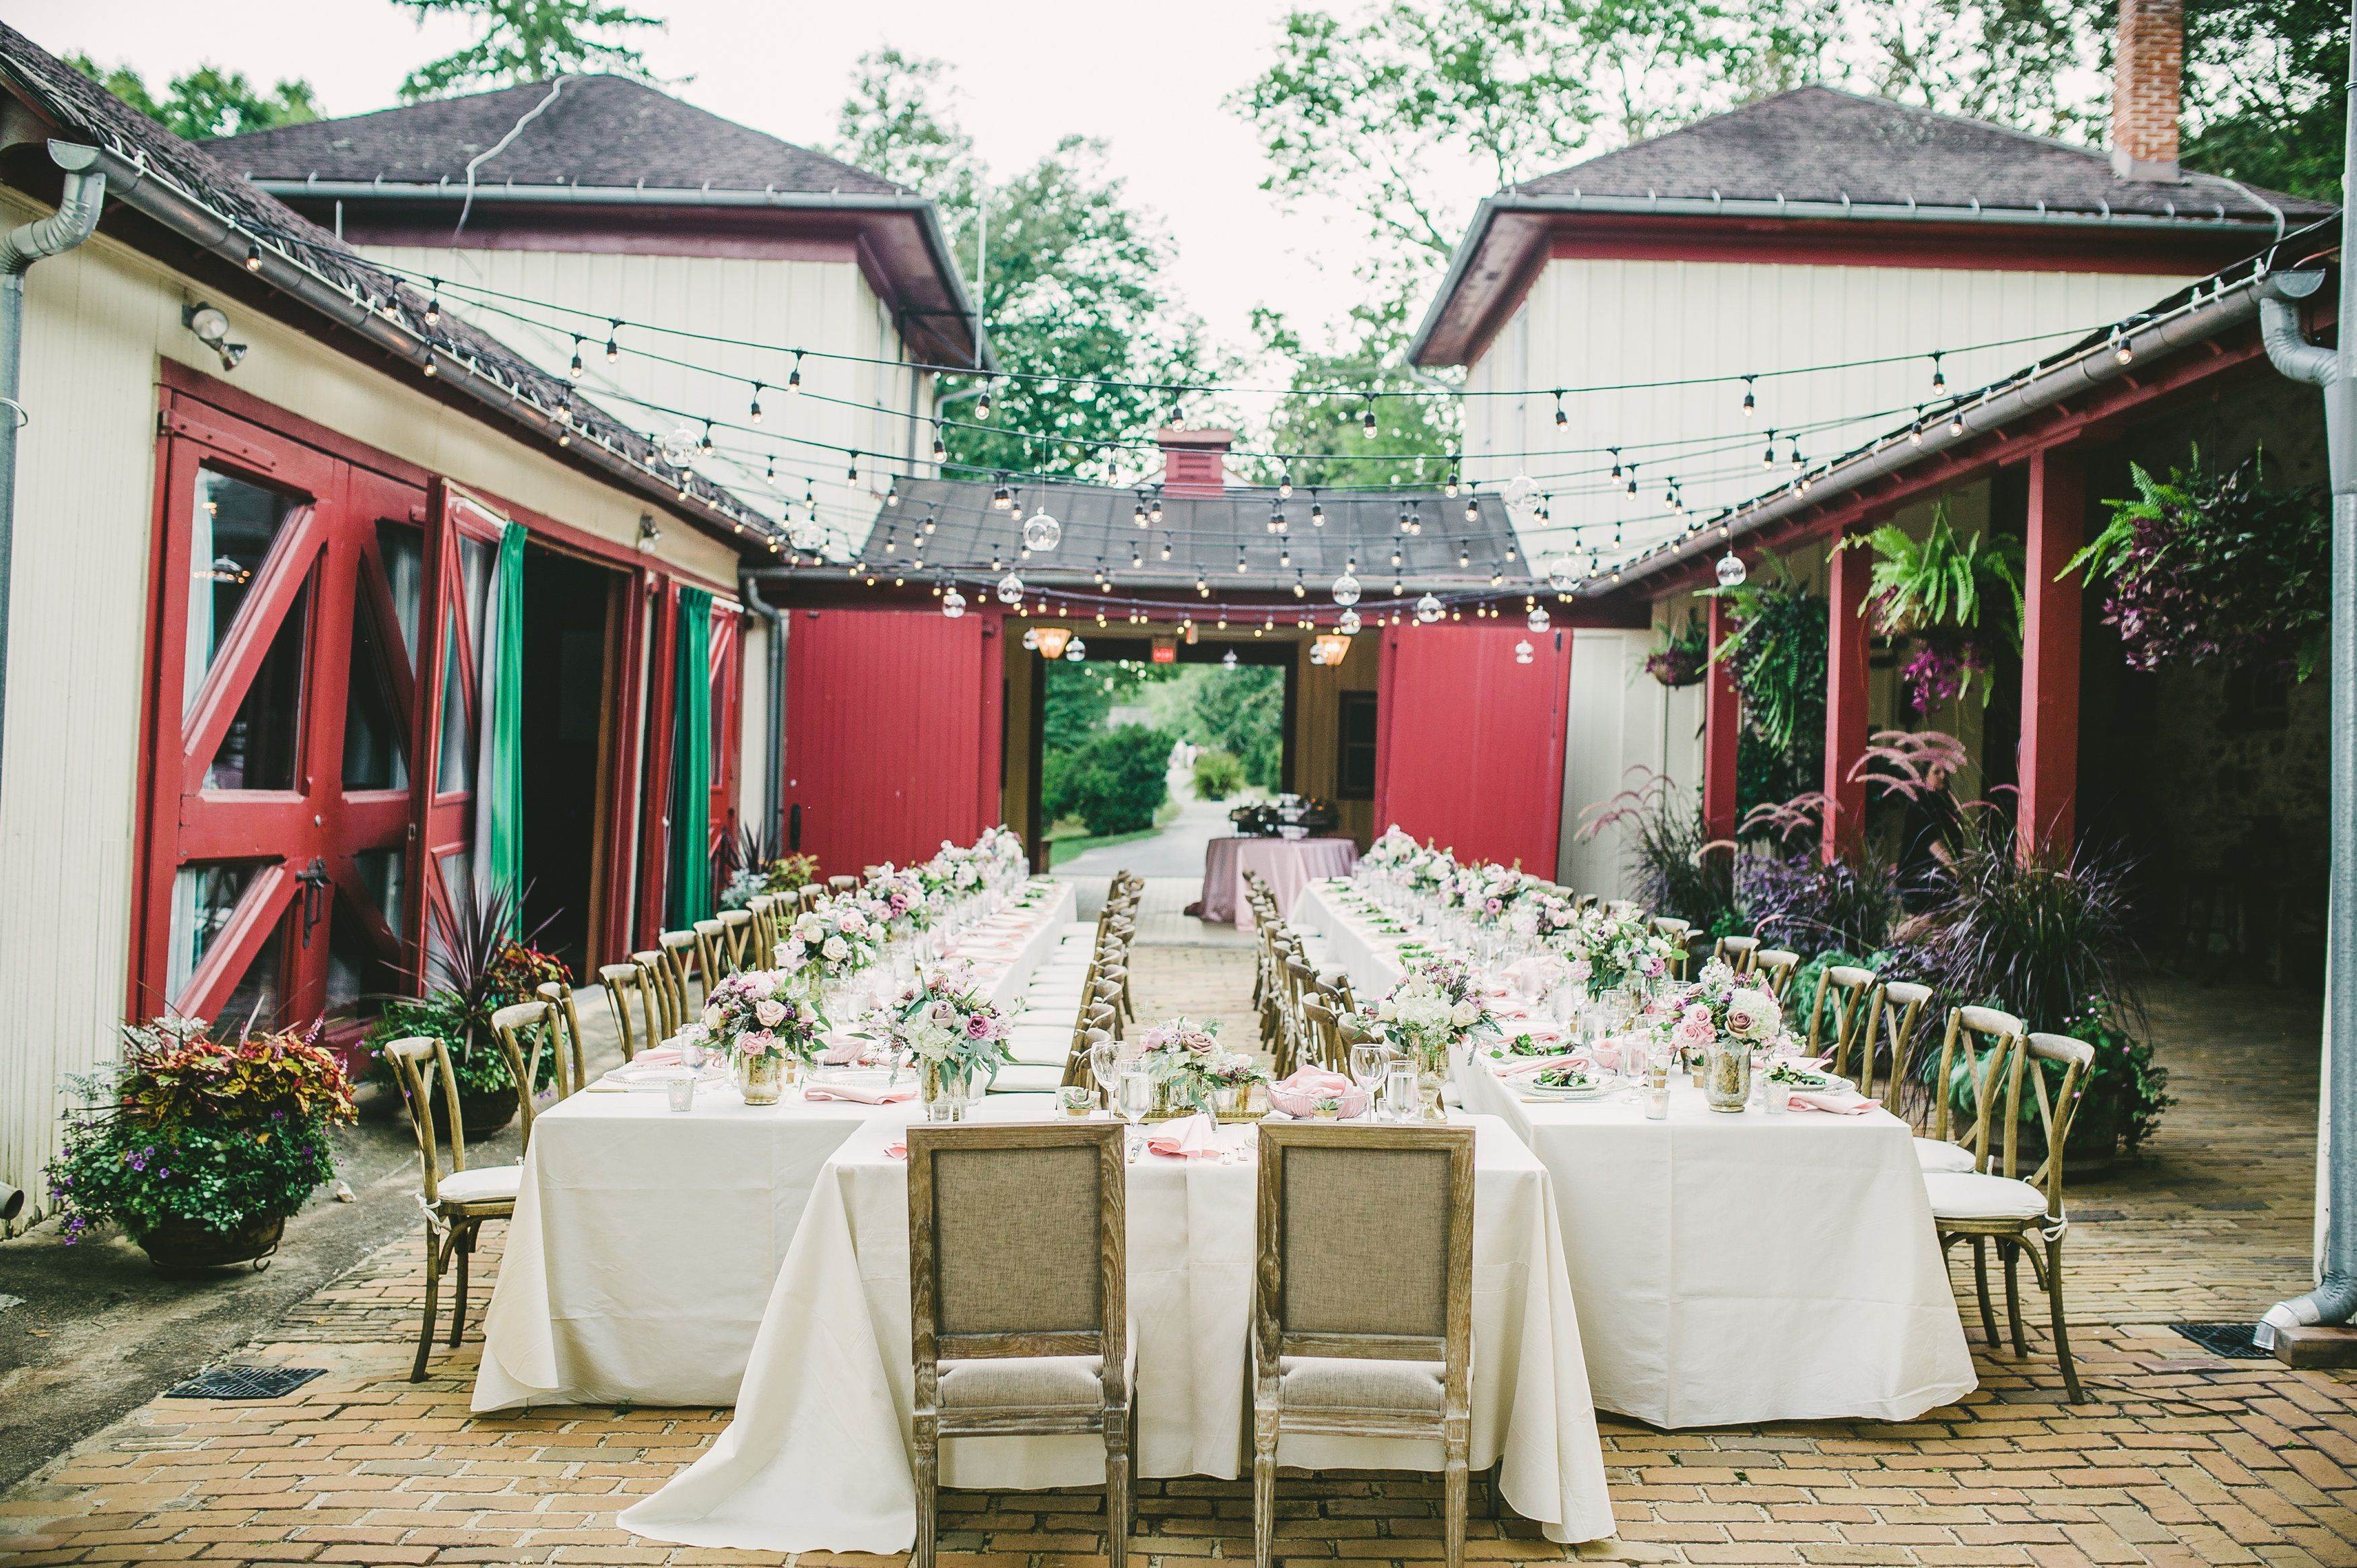 Morven Park Wedding | The Old Carriage House At The Morven Park Mansion Set Up For An